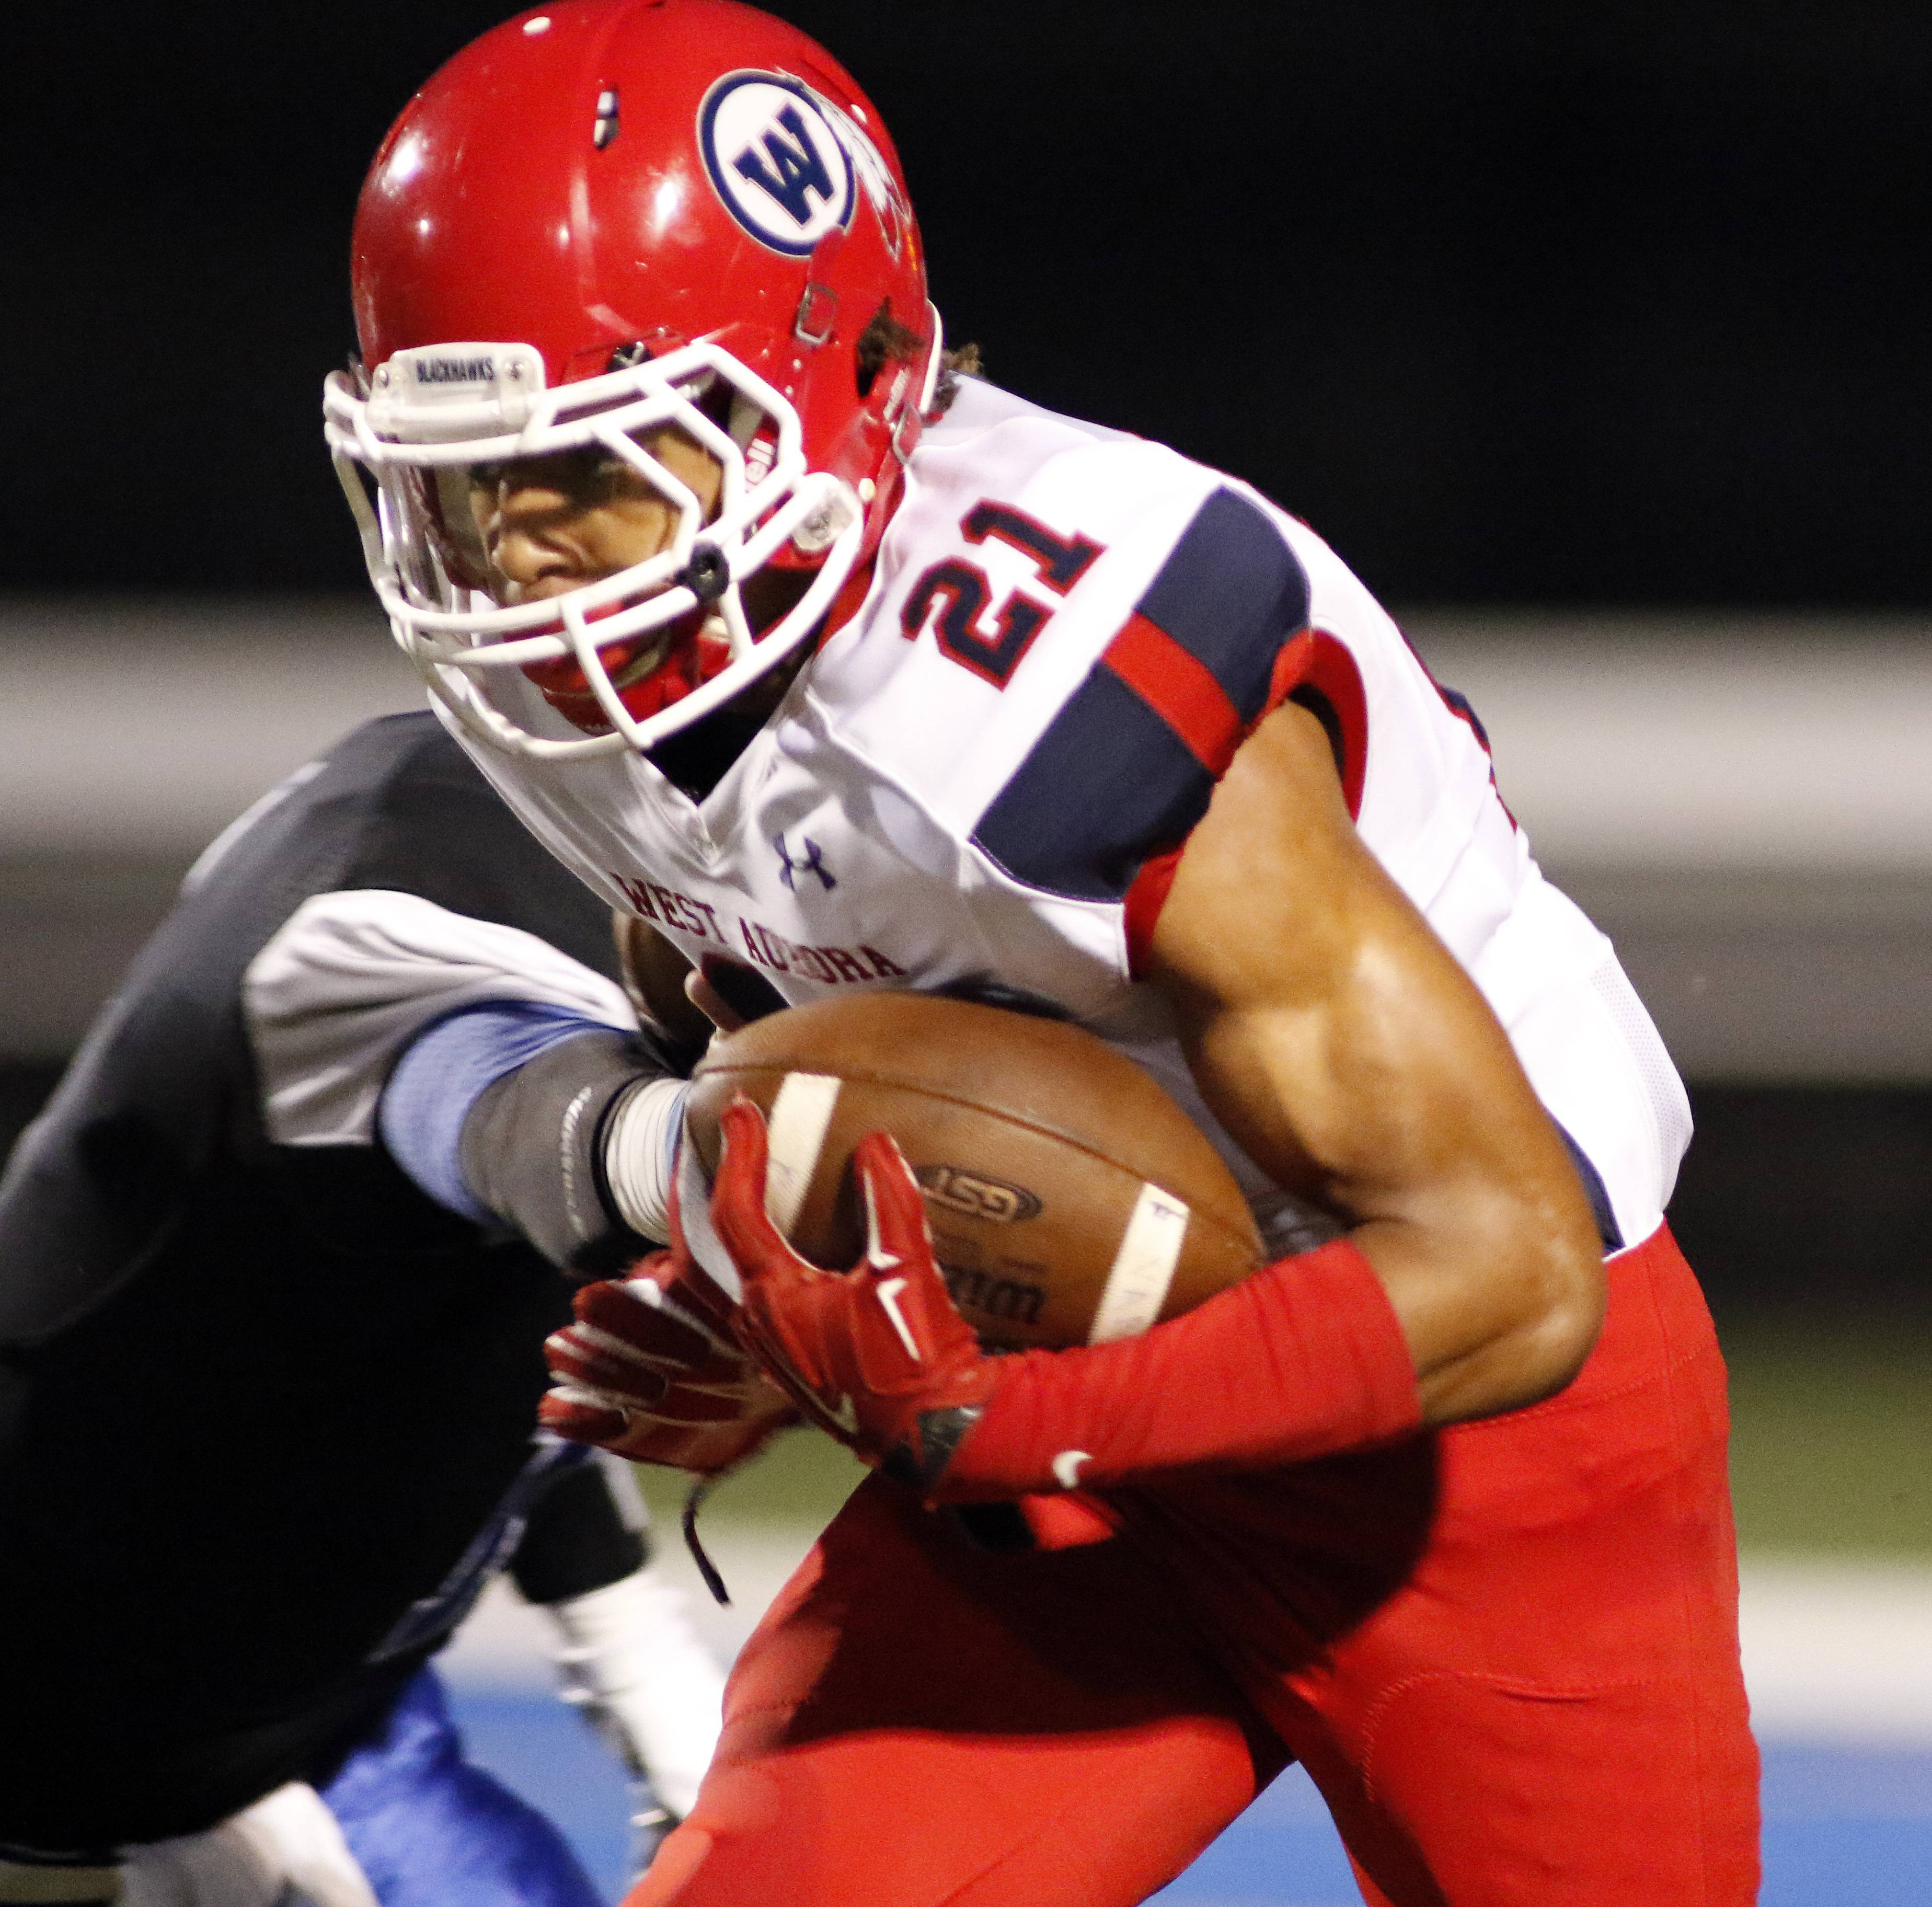 West Aurora running back DaQuan Cross returns to lead the Blackhawks this season.